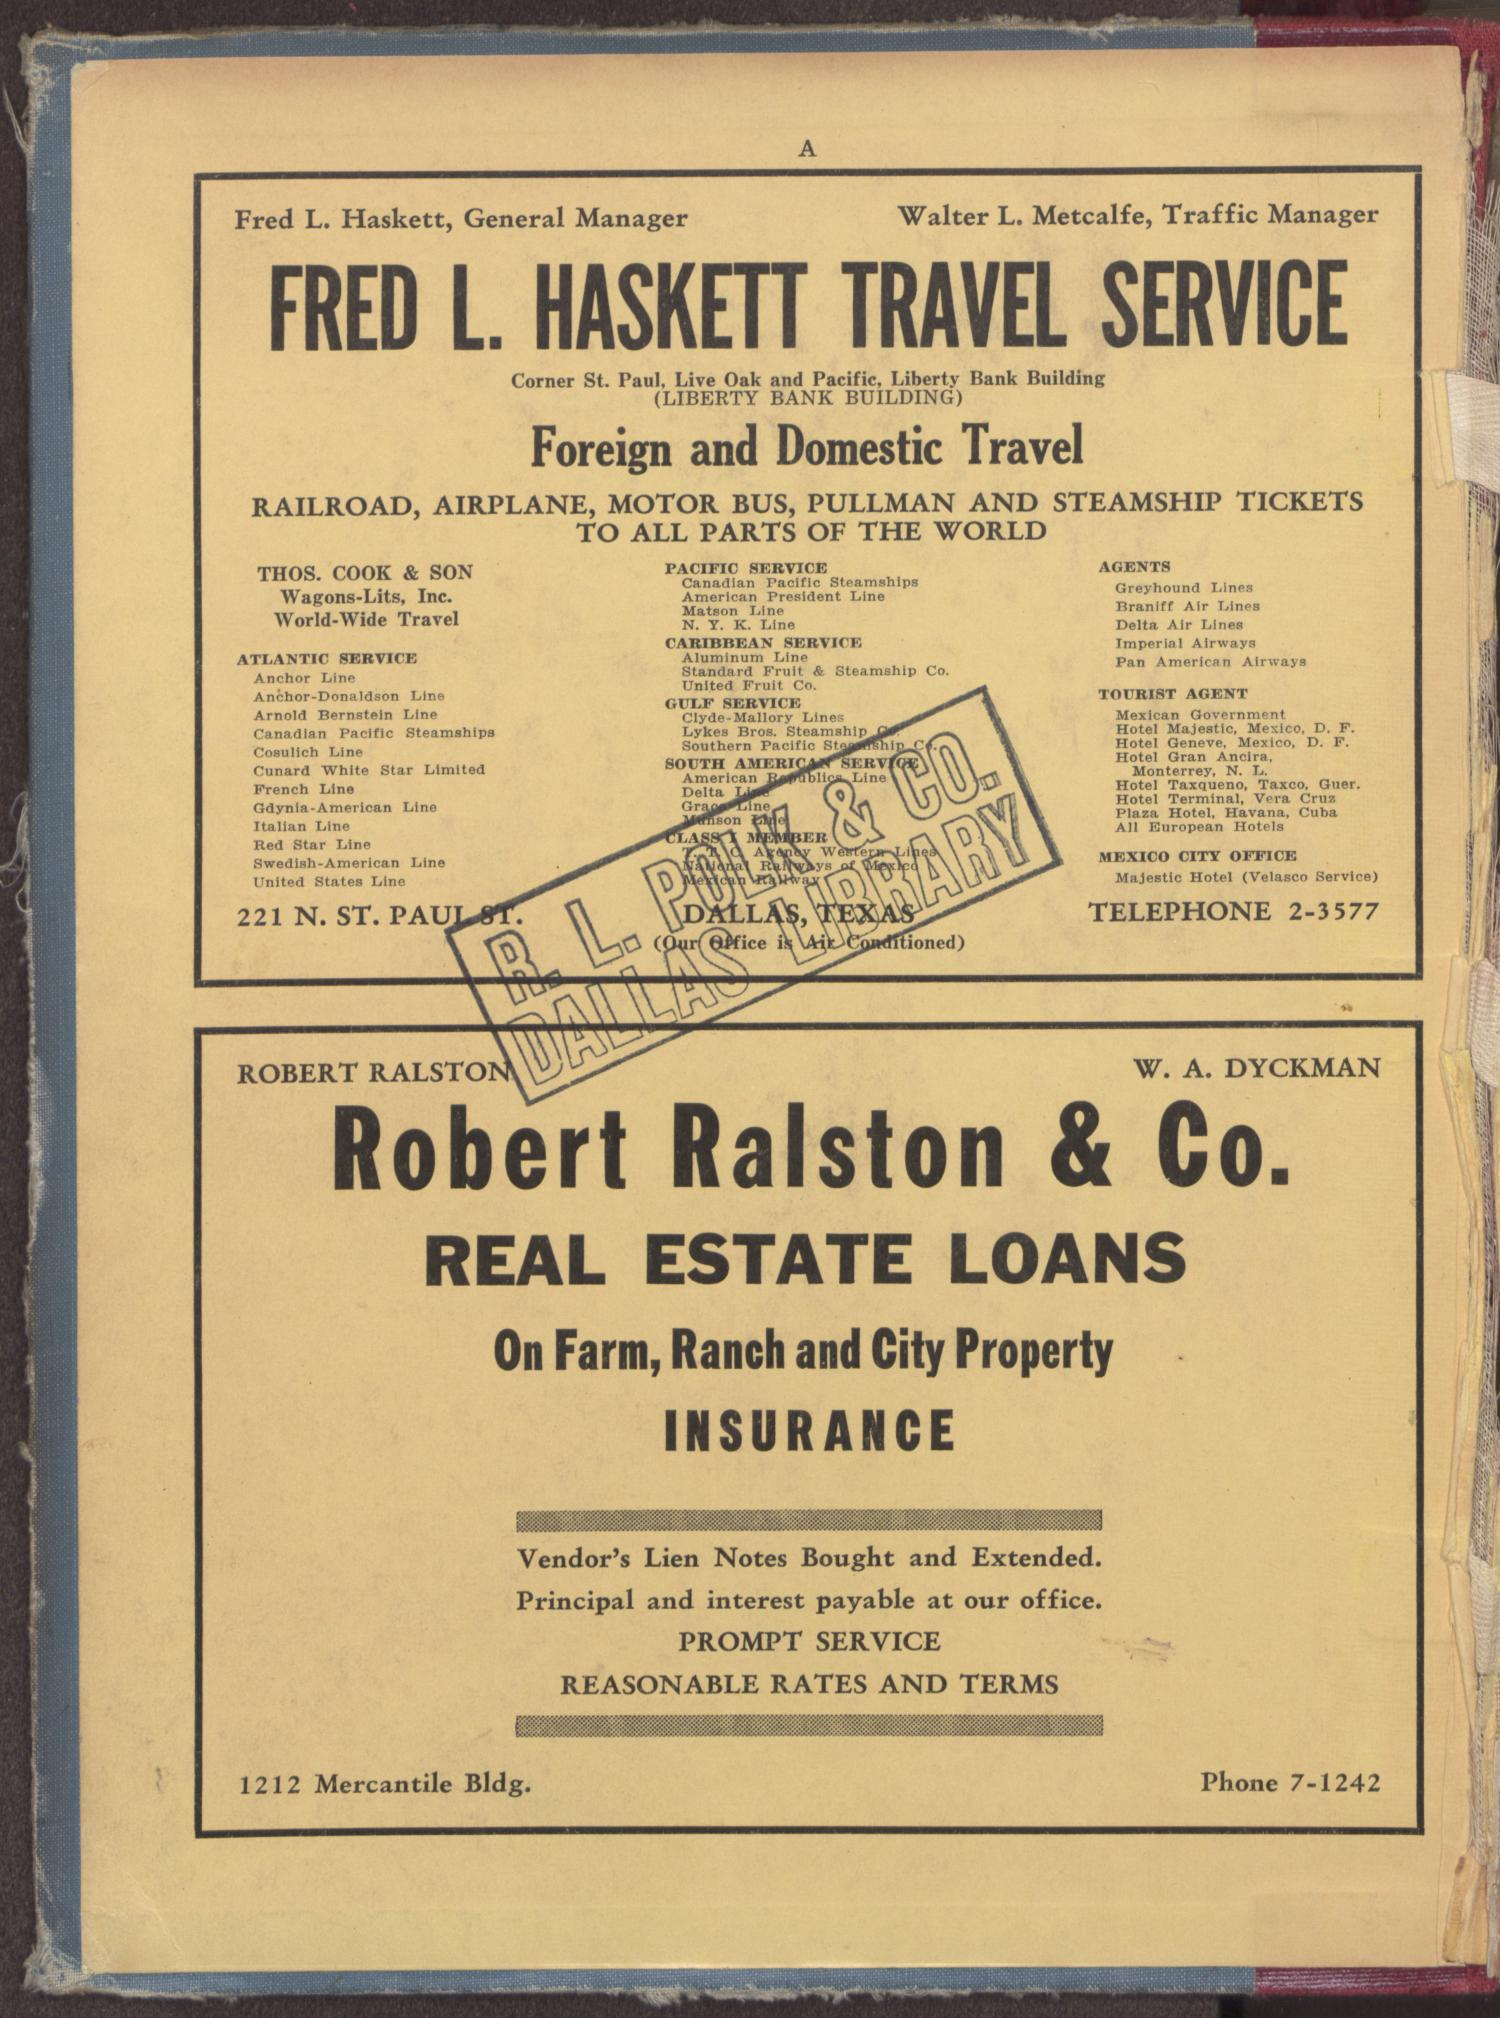 Dallas City Directory, 1939                                                                                                      FRONT INSIDE COVER